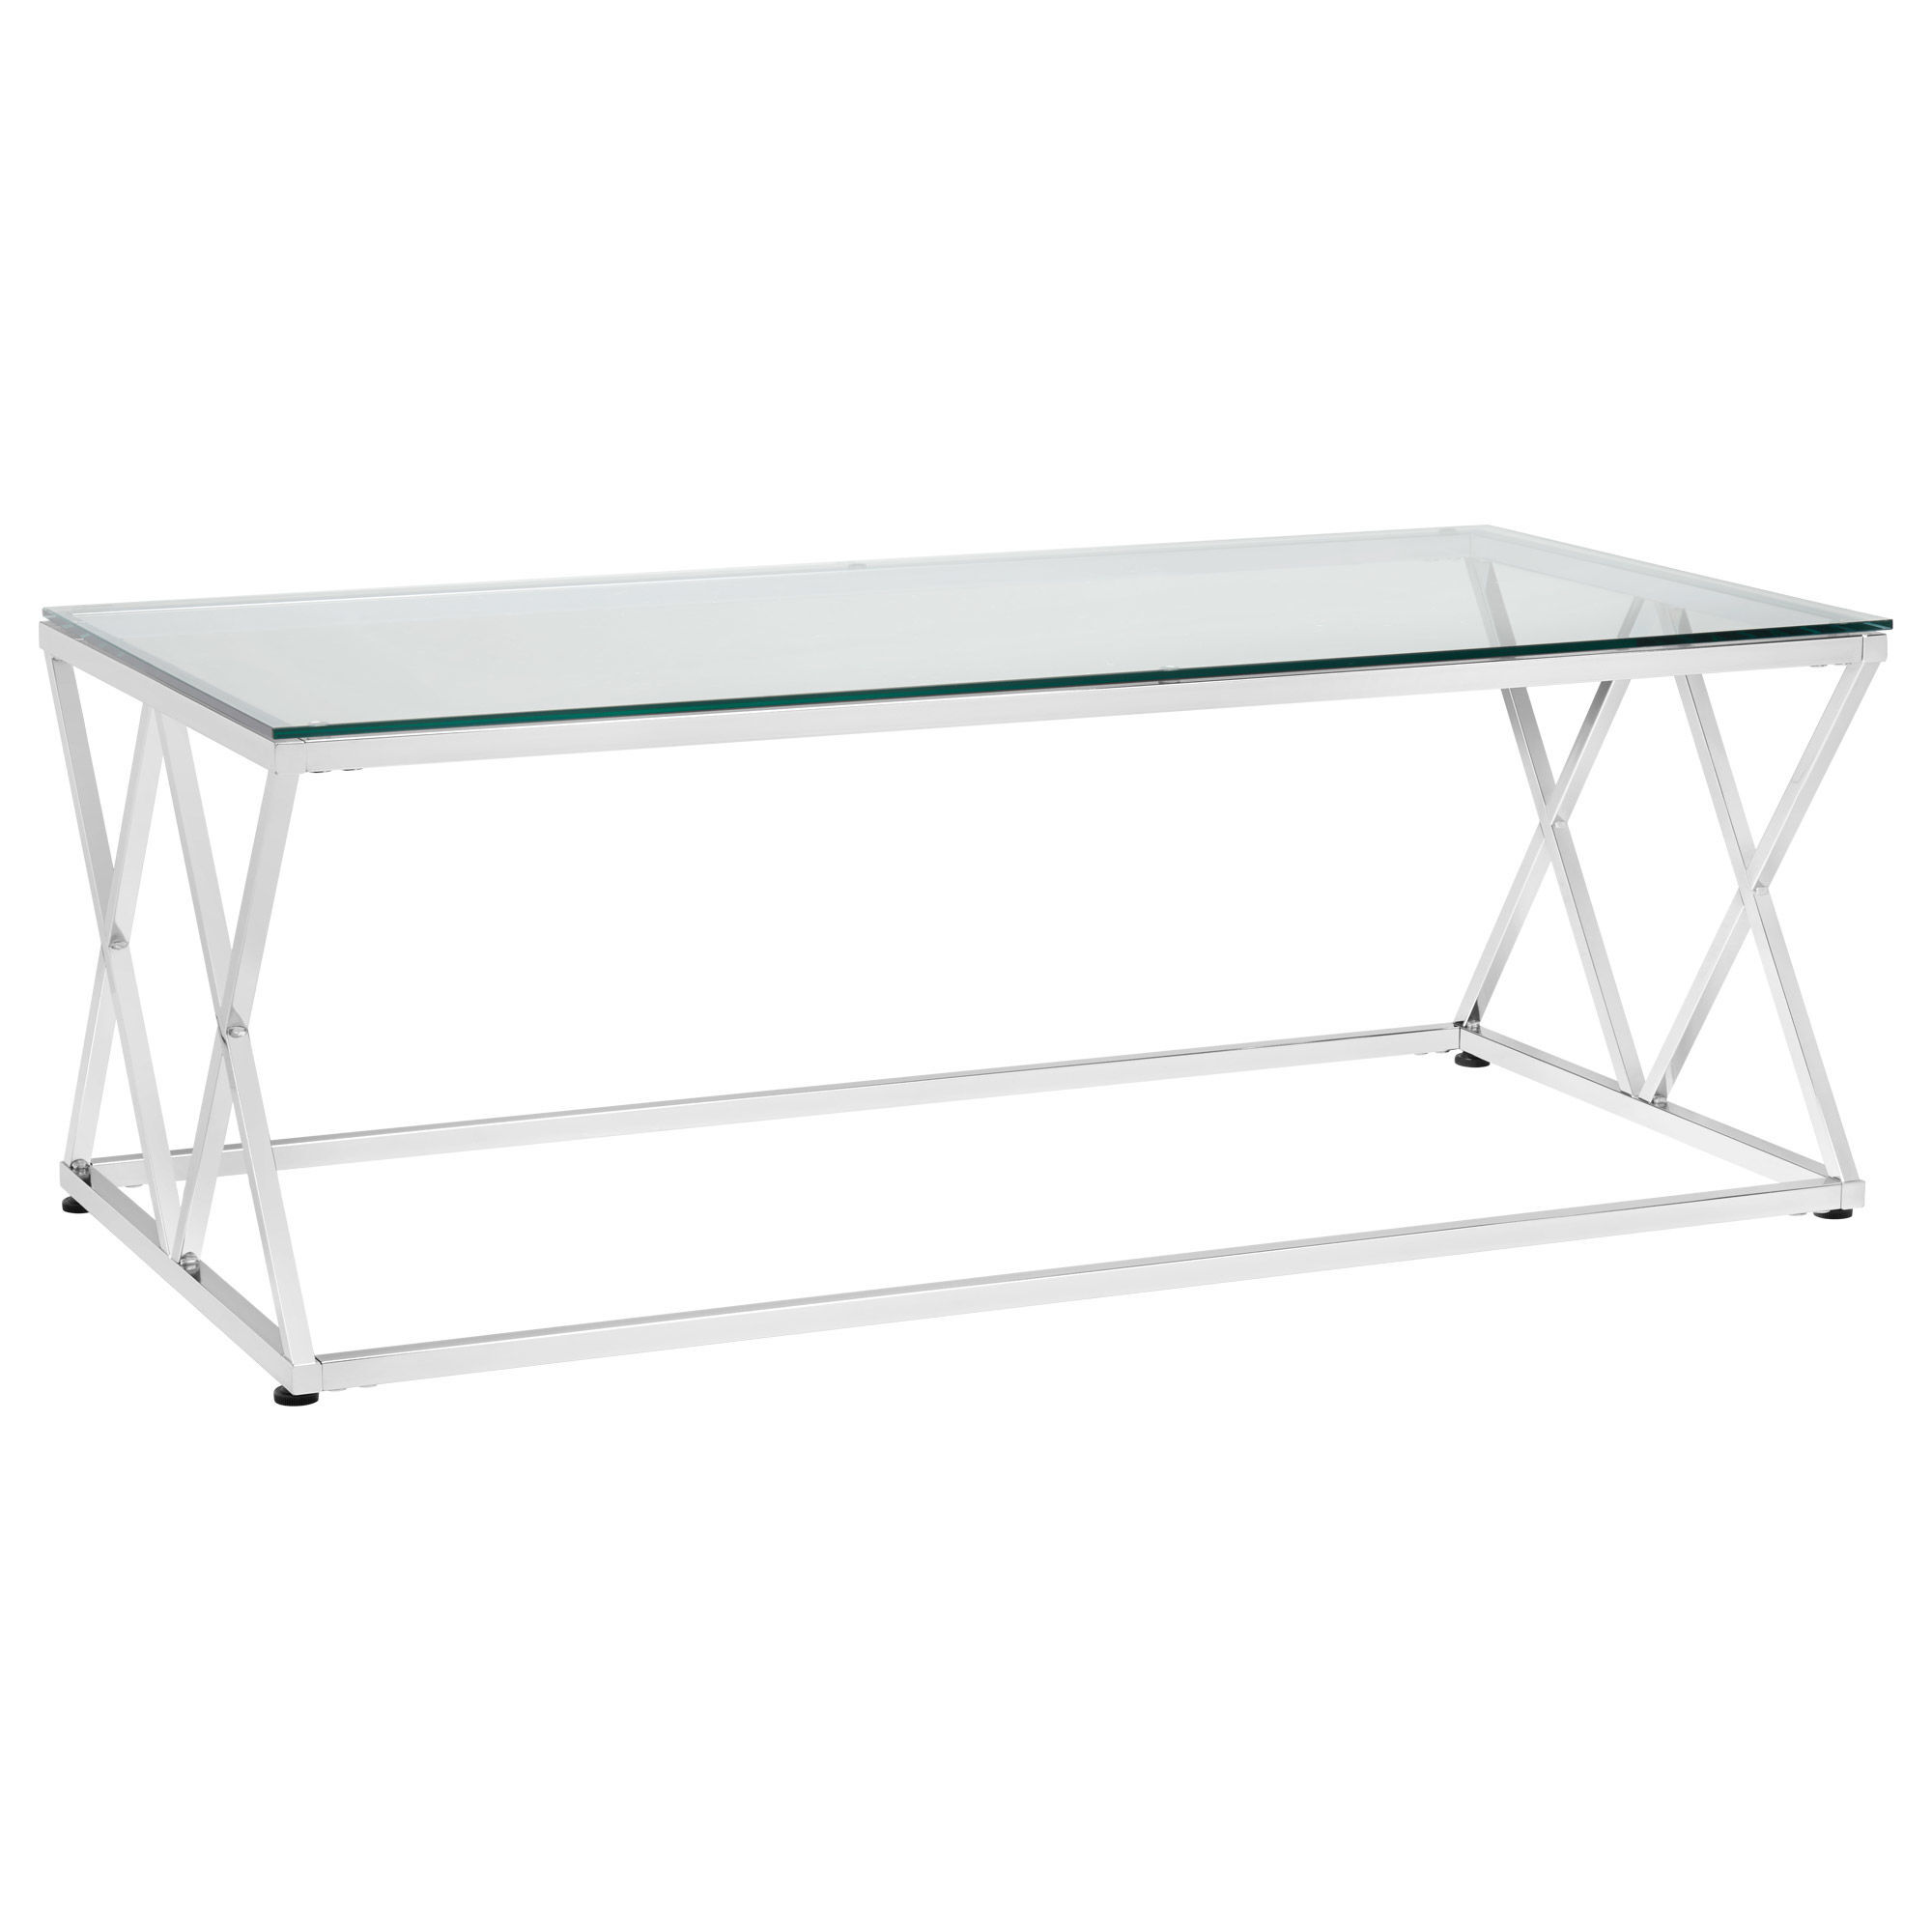 Etonnant Tempered Glass Coffee Table With Metal Legs